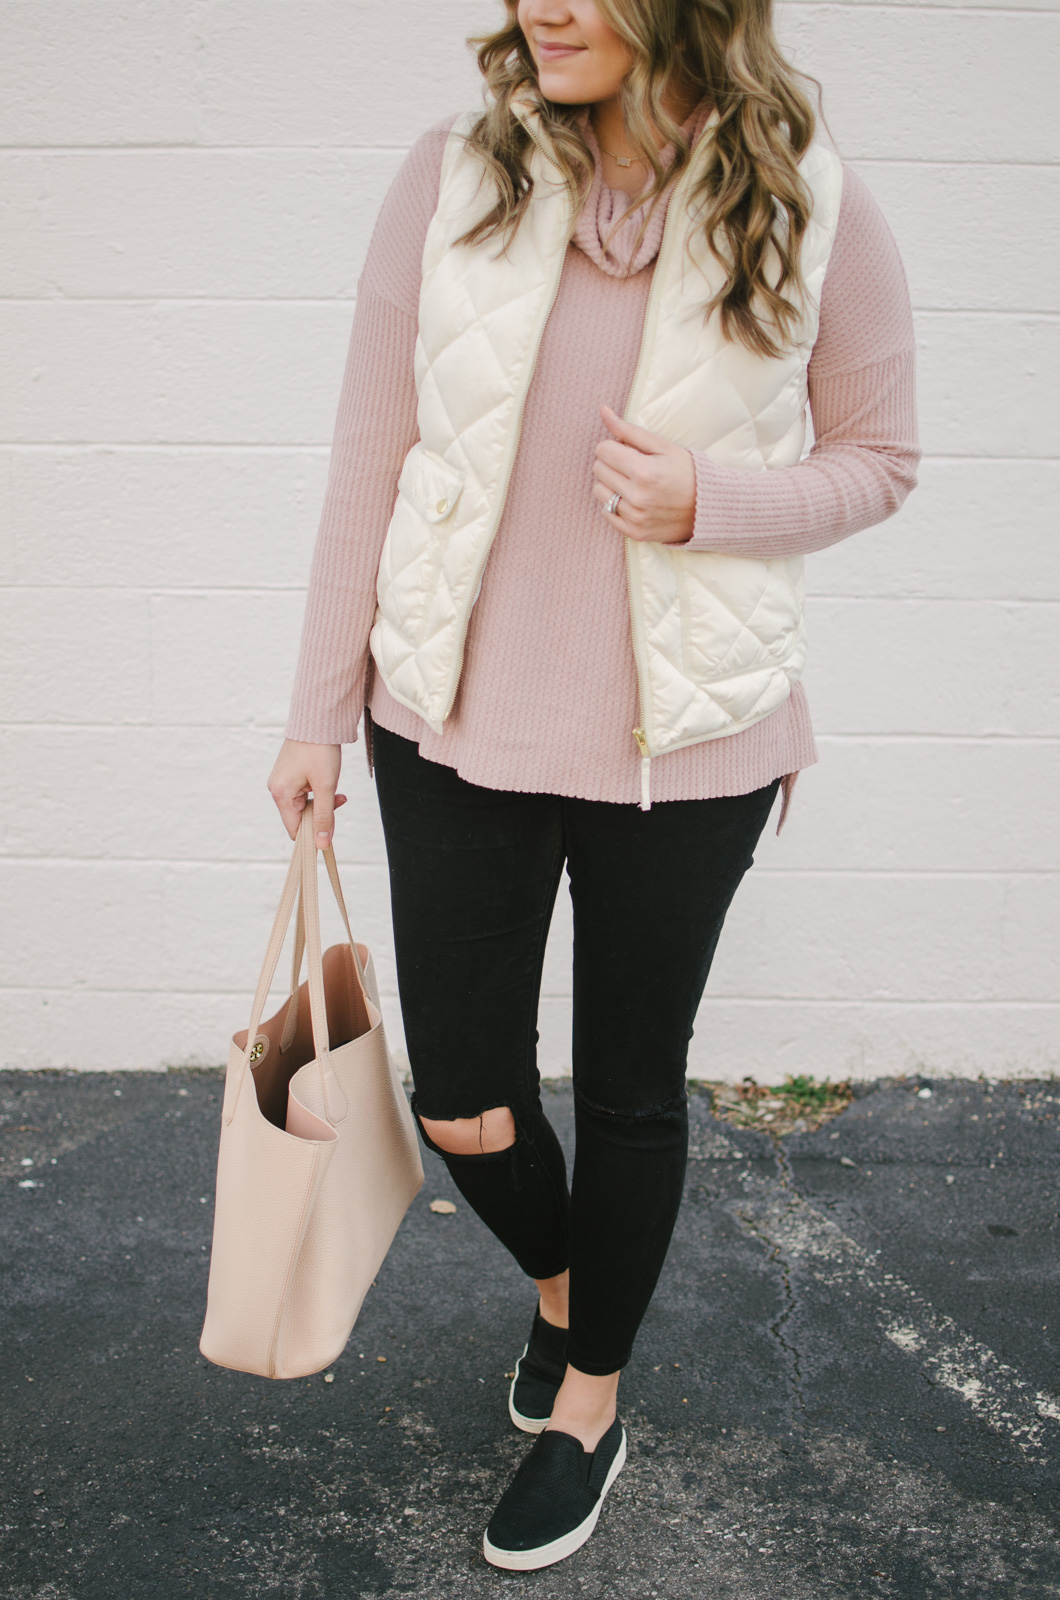 cream puffer vest -puffer vest outfit for winter | shop this look or see more winter outfits at bylaurenm.com!